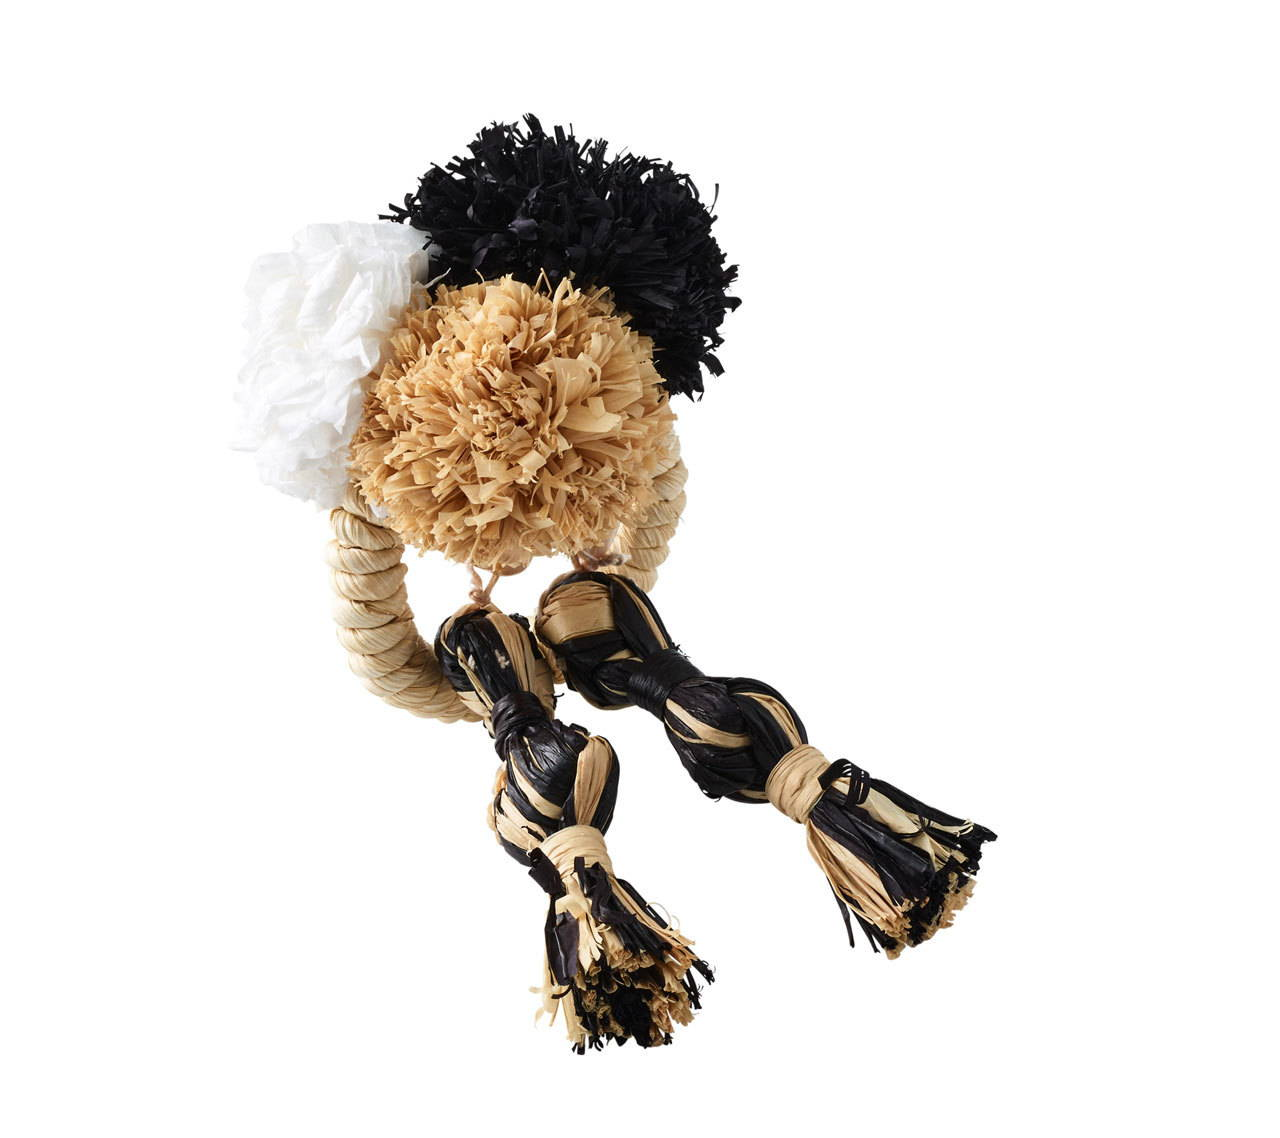 FIESTA NAPKIN RING IN IVORY & BLACK